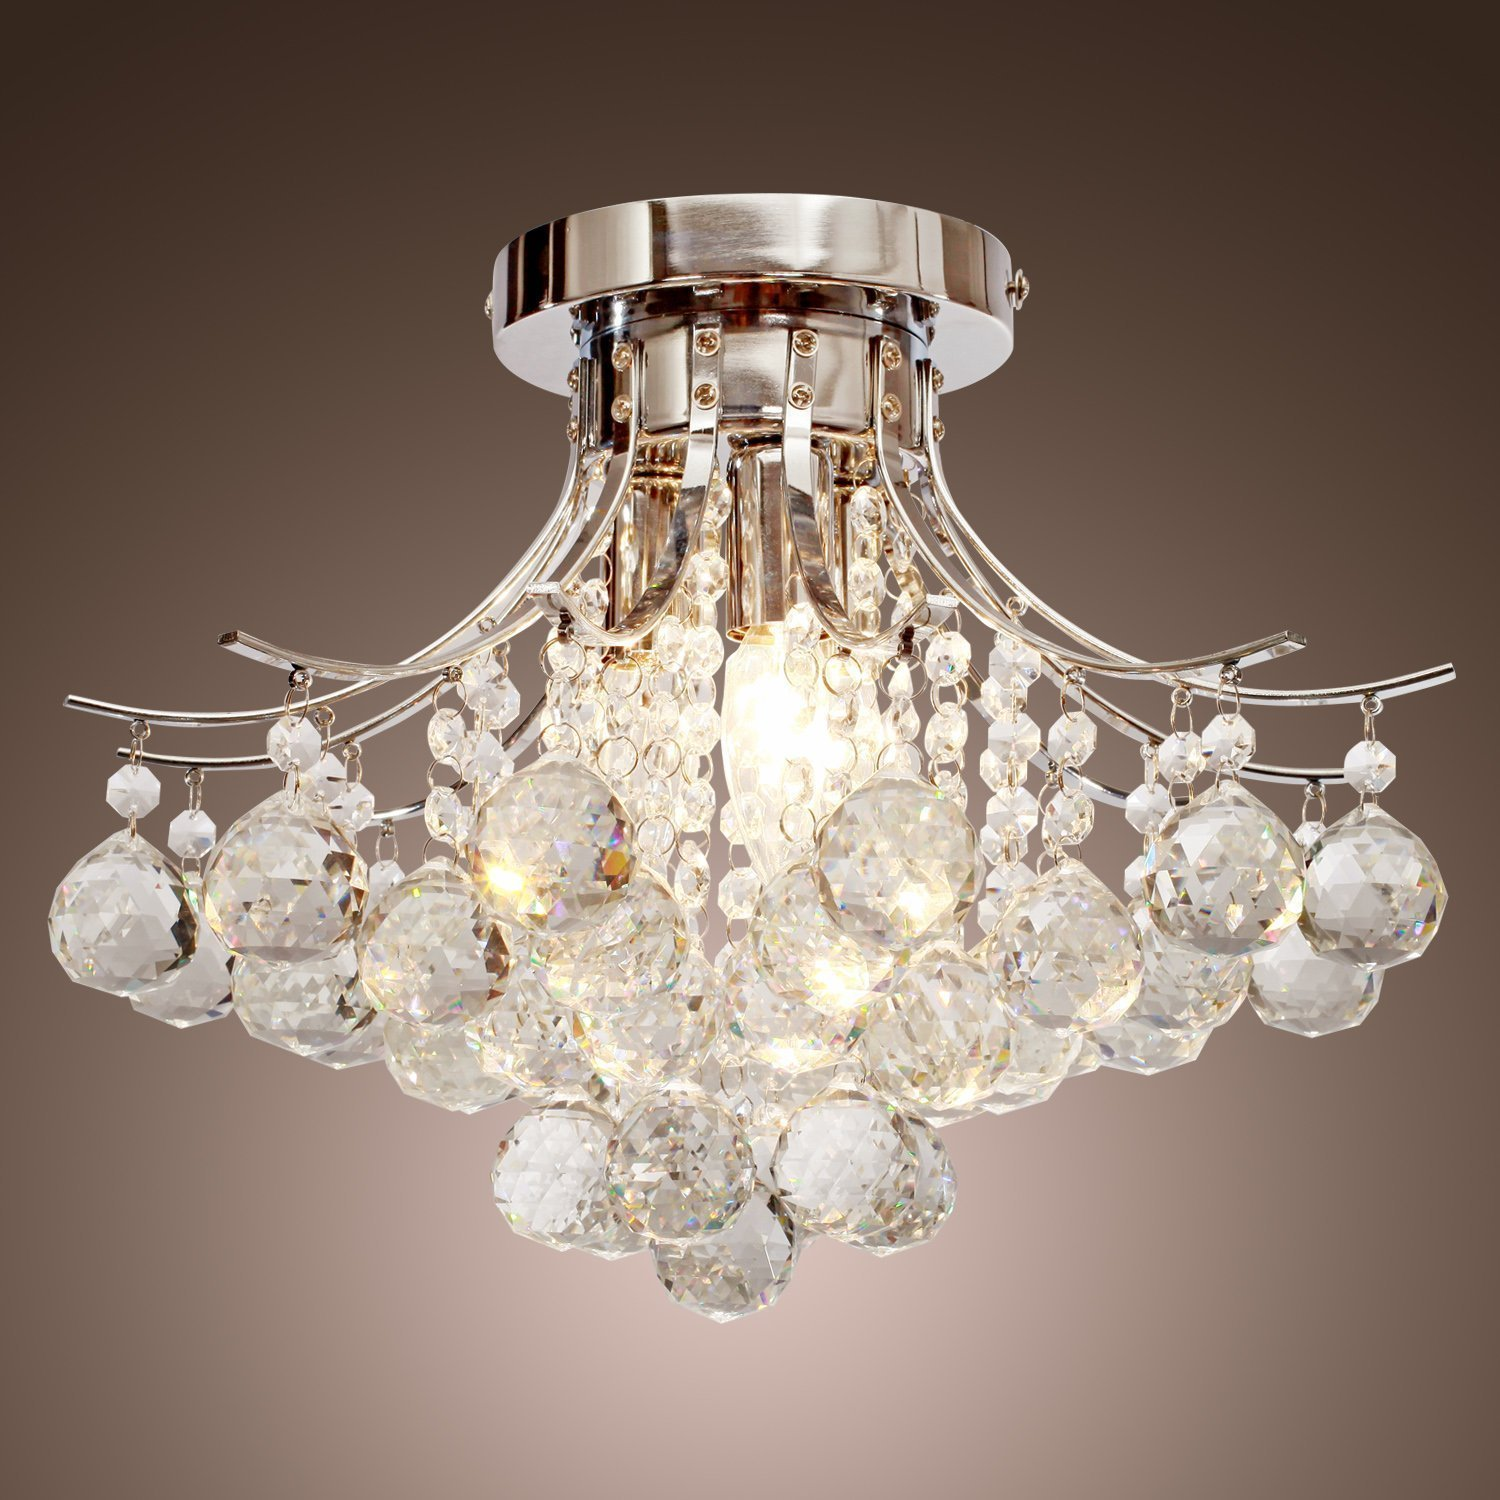 Ceiling light chandelier 10 ways to install warisan lighting how to install and wire a ceiling light or chandelier in your home arubaitofo Images